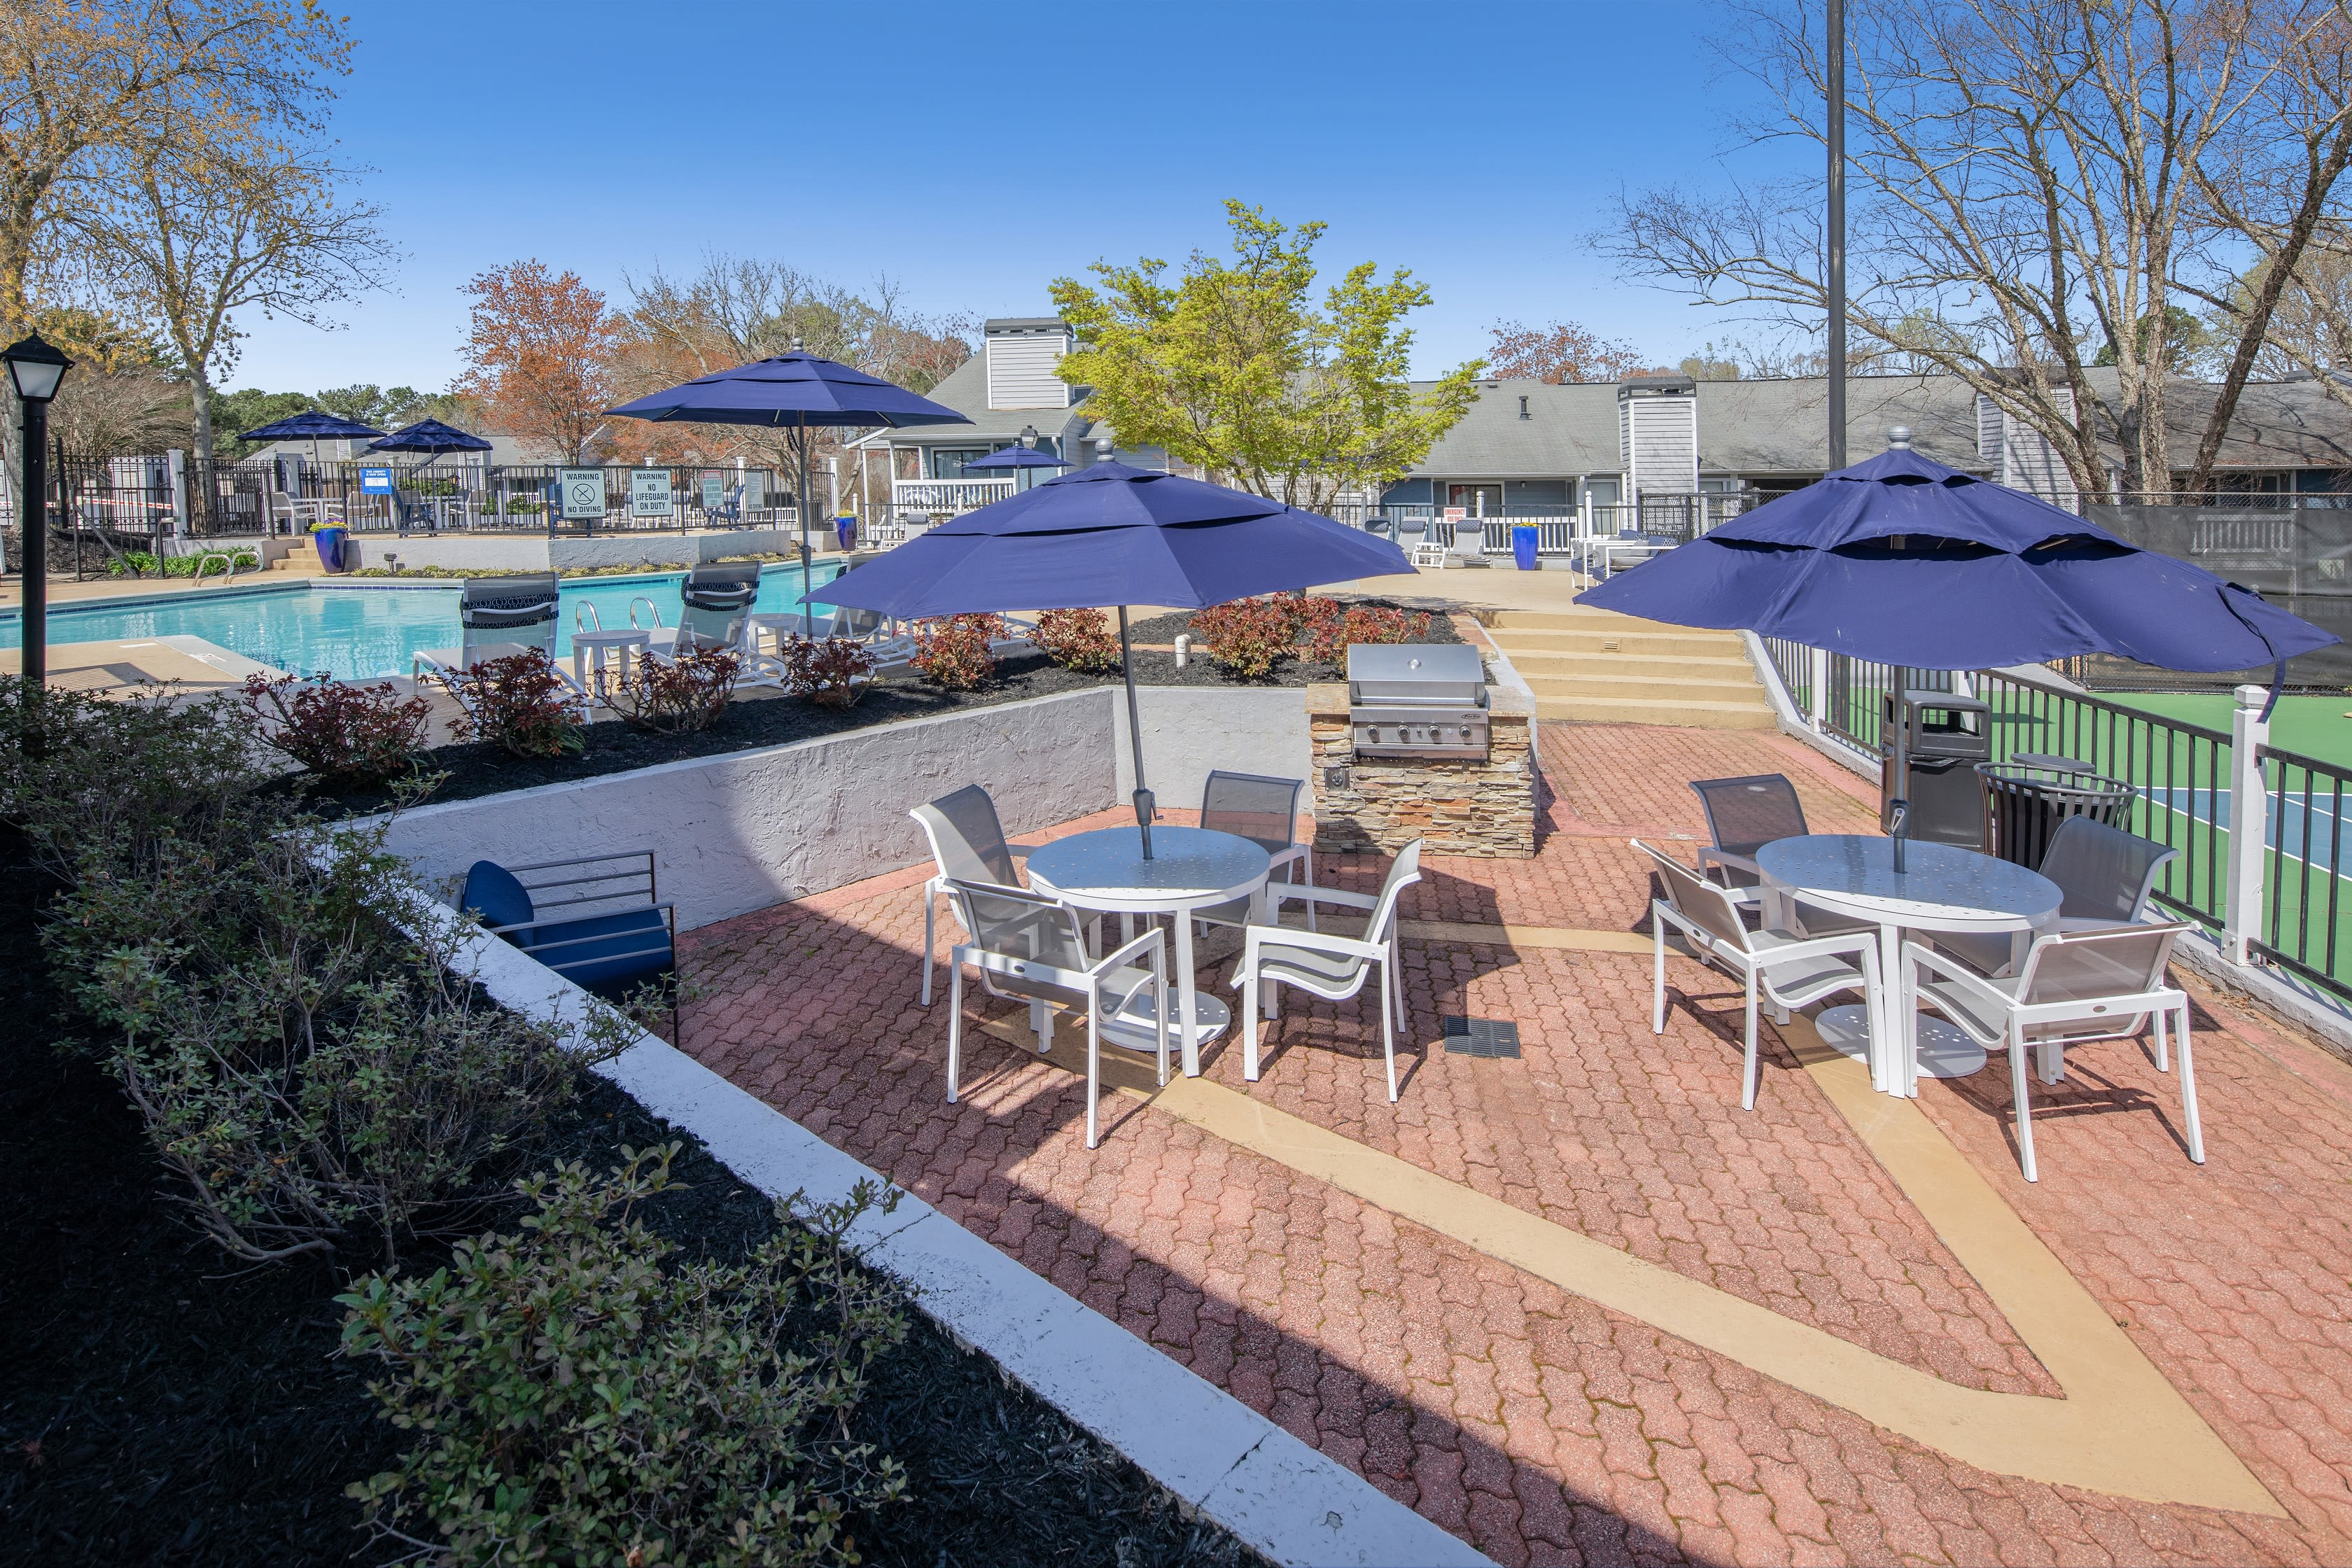 An outdoor seating area with tables and umbrellas at The Everette at East Cobb in Marietta, Georgia